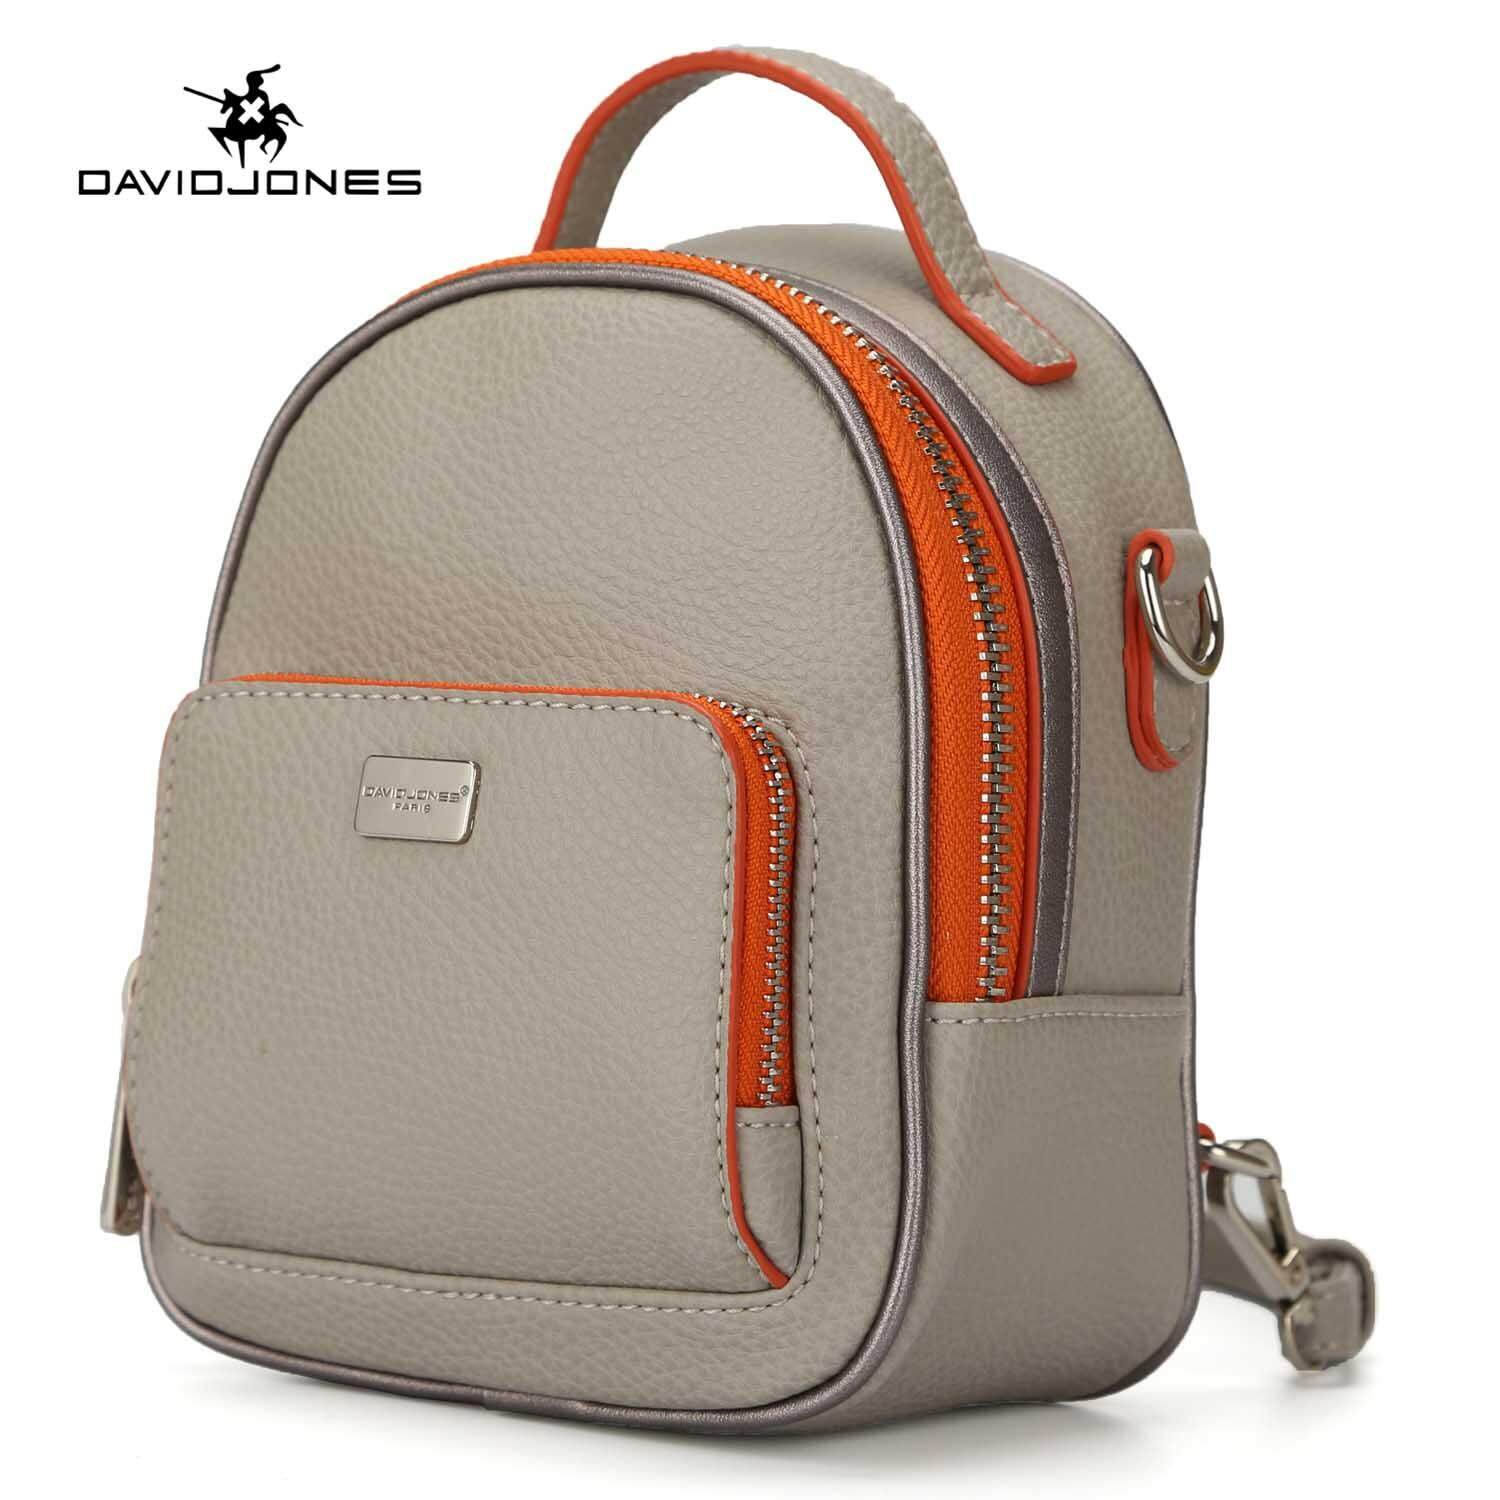 a1f4a9a3dbc DAVIDJONES women backpack pu leather female shoulder bag small lady  patchwork back bag girl casual book